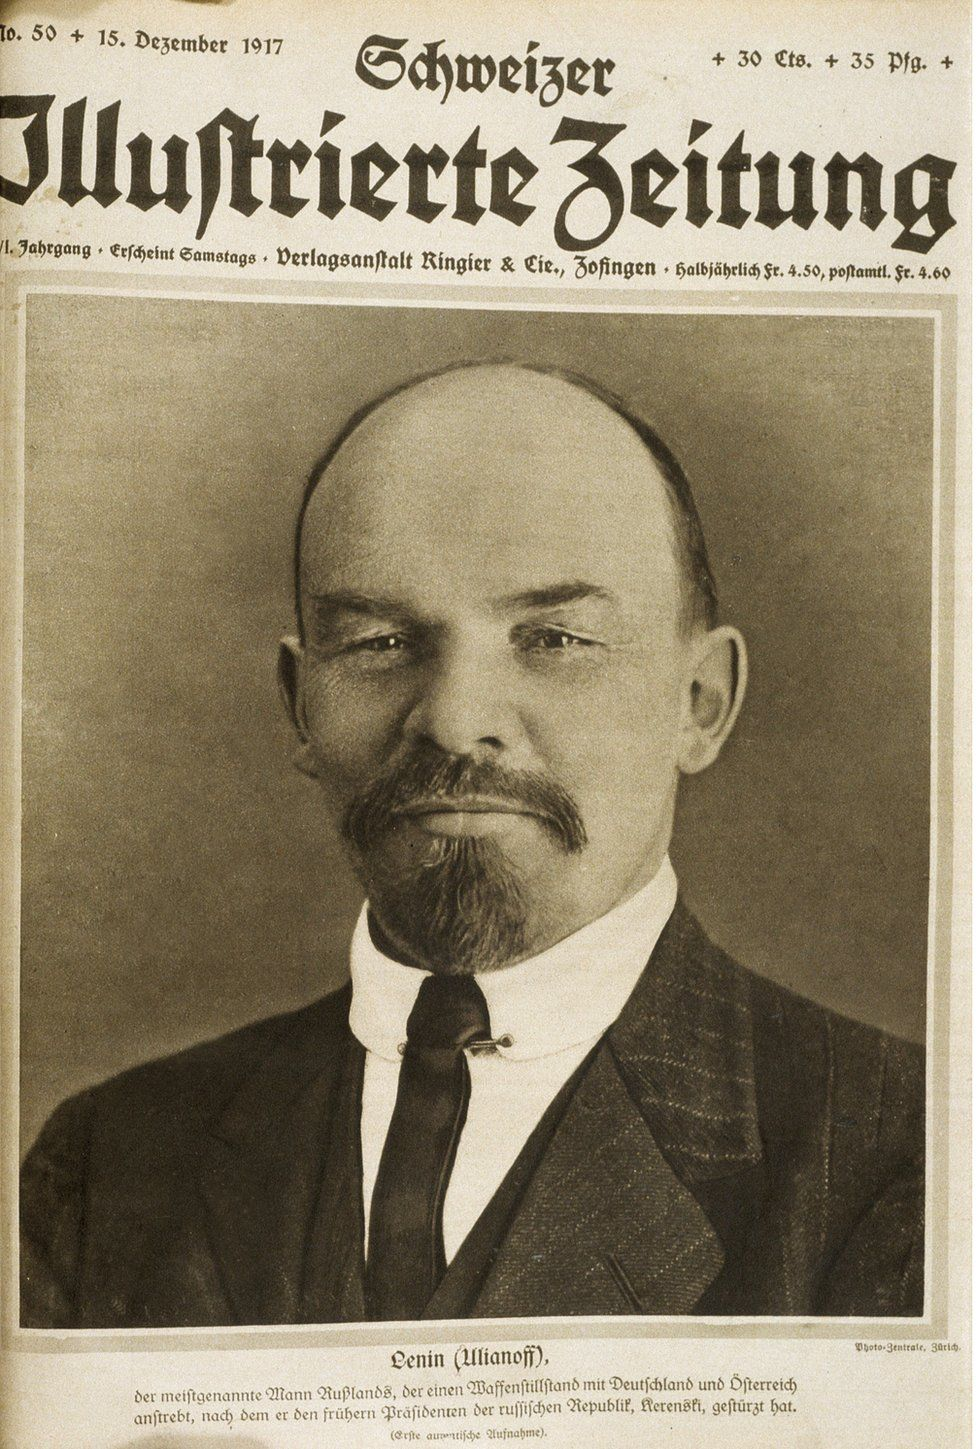 Picture of Lenin on the front page of the Schweizer Illustrierte of 15 December 1917.